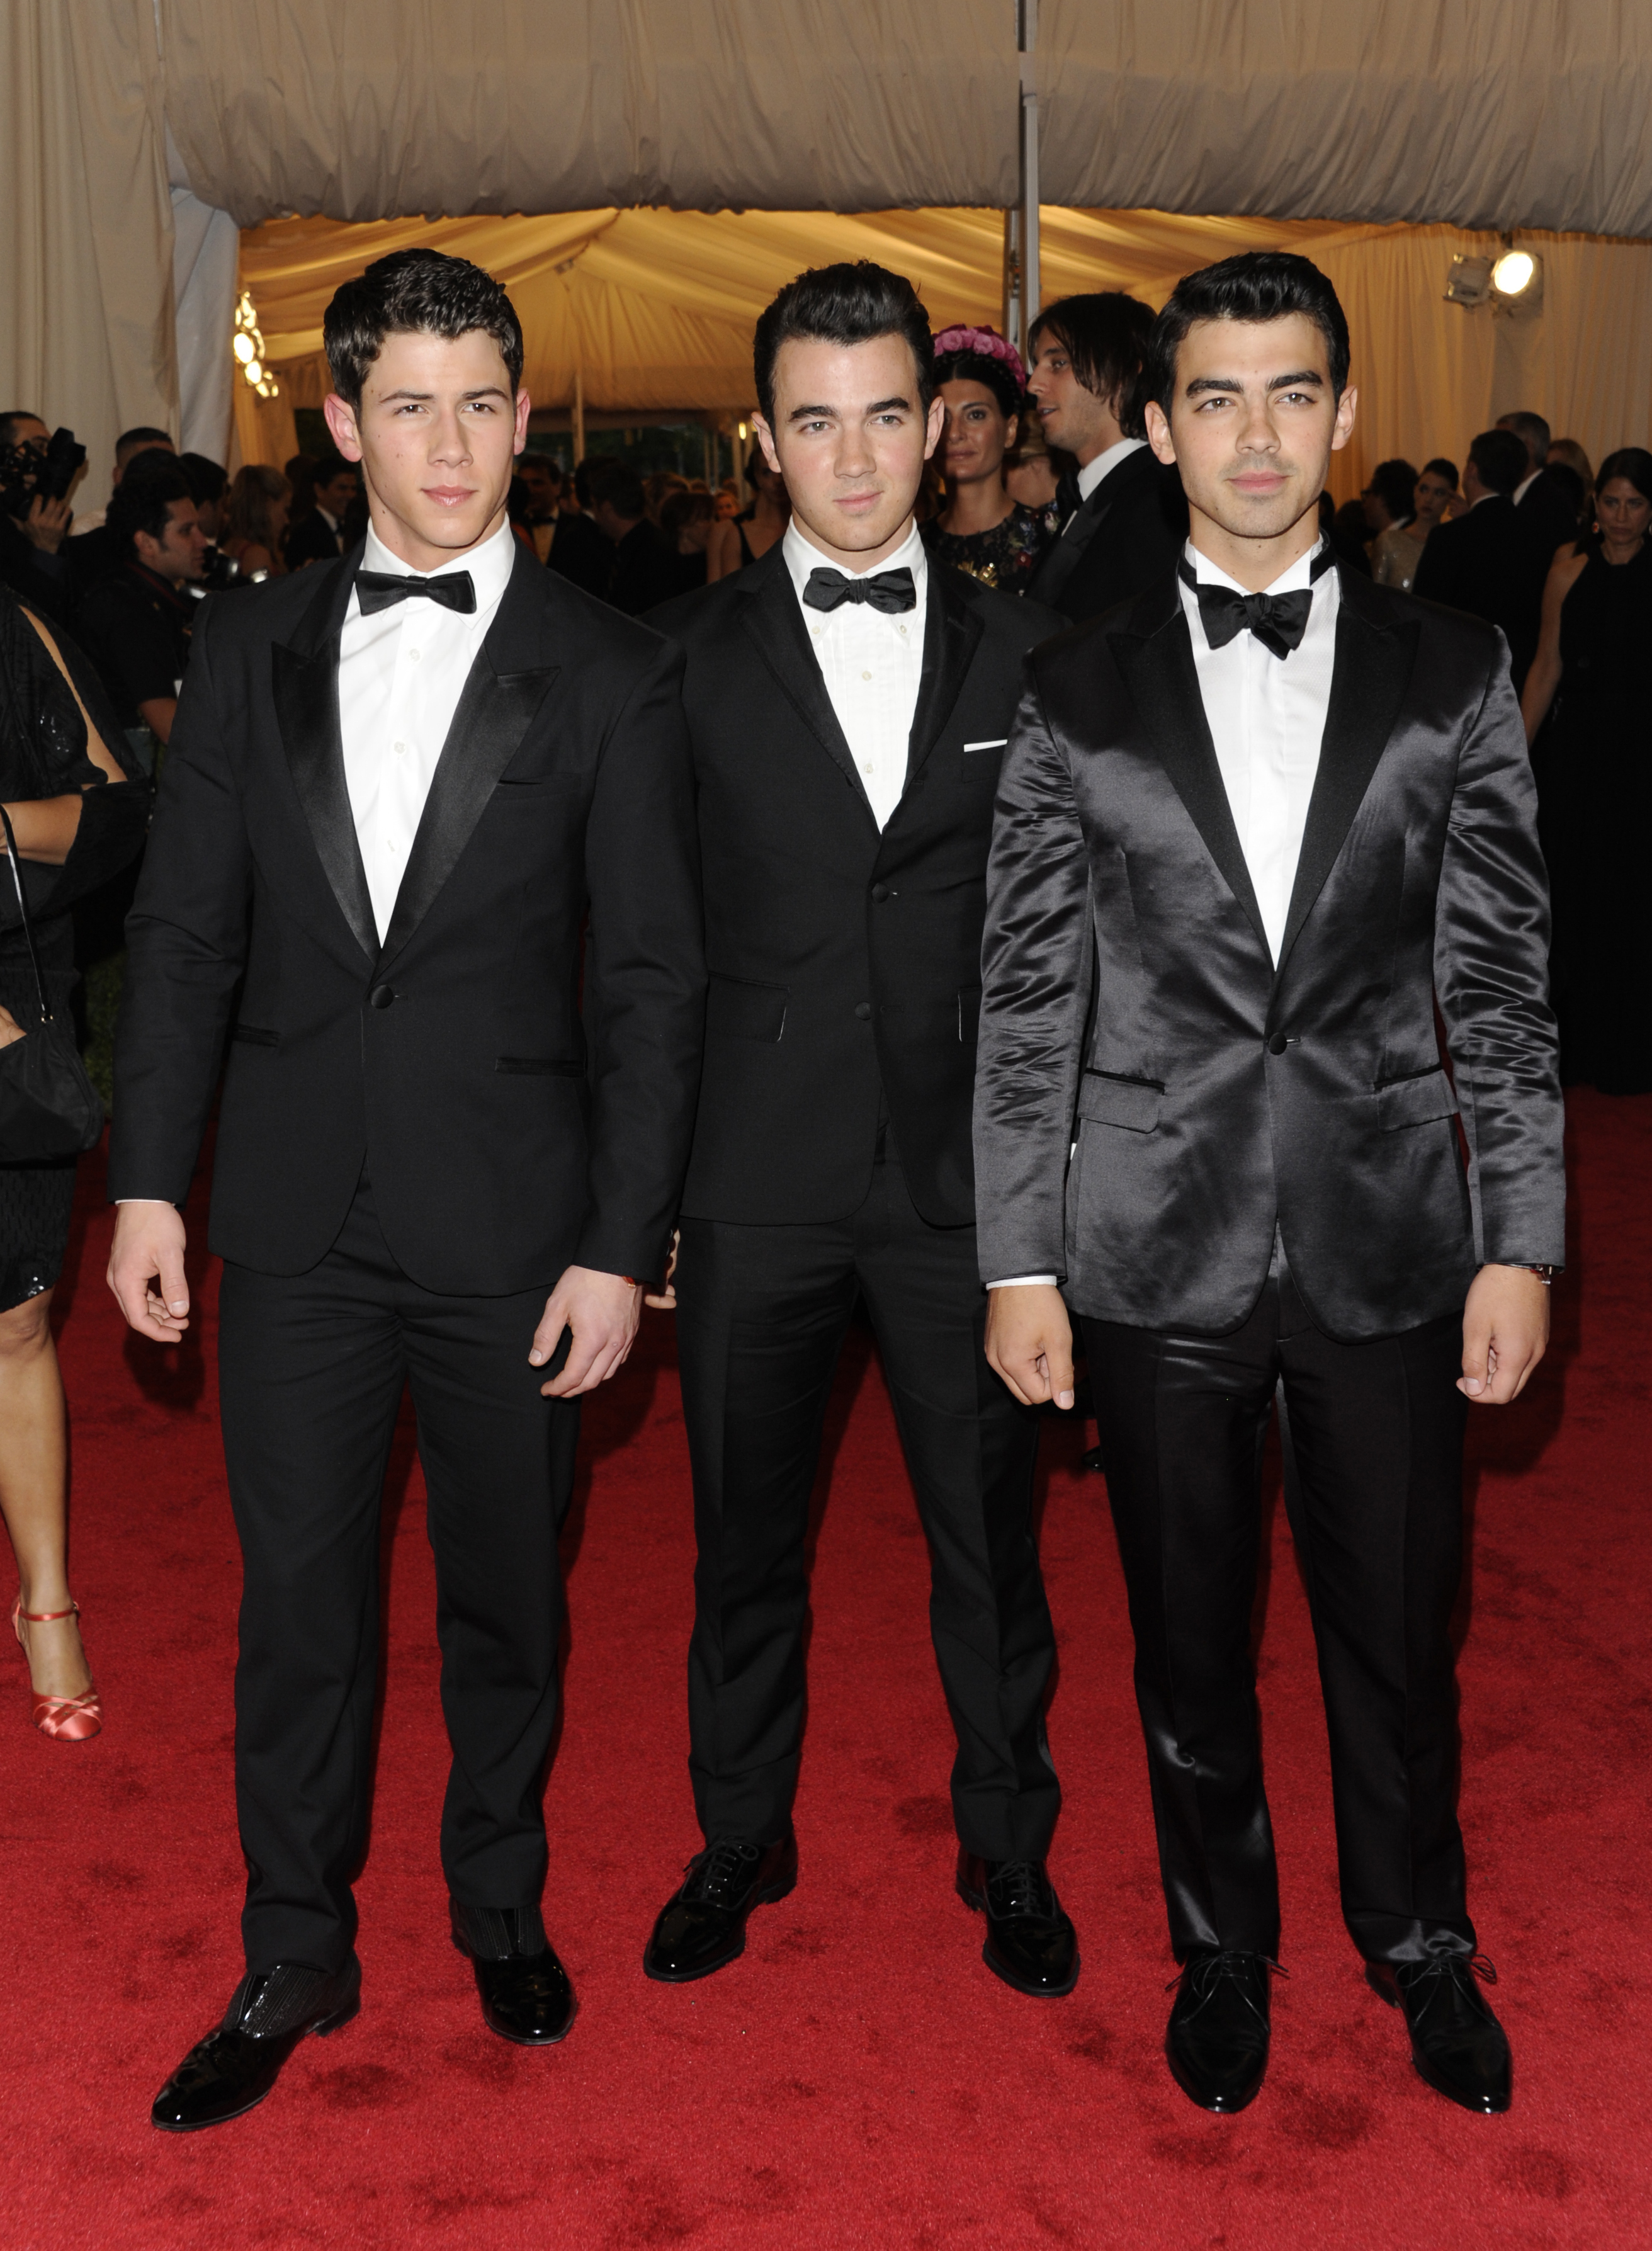 Nick Jonas, 24, Joe Jonas, 27 and Kevin Jonas, 29